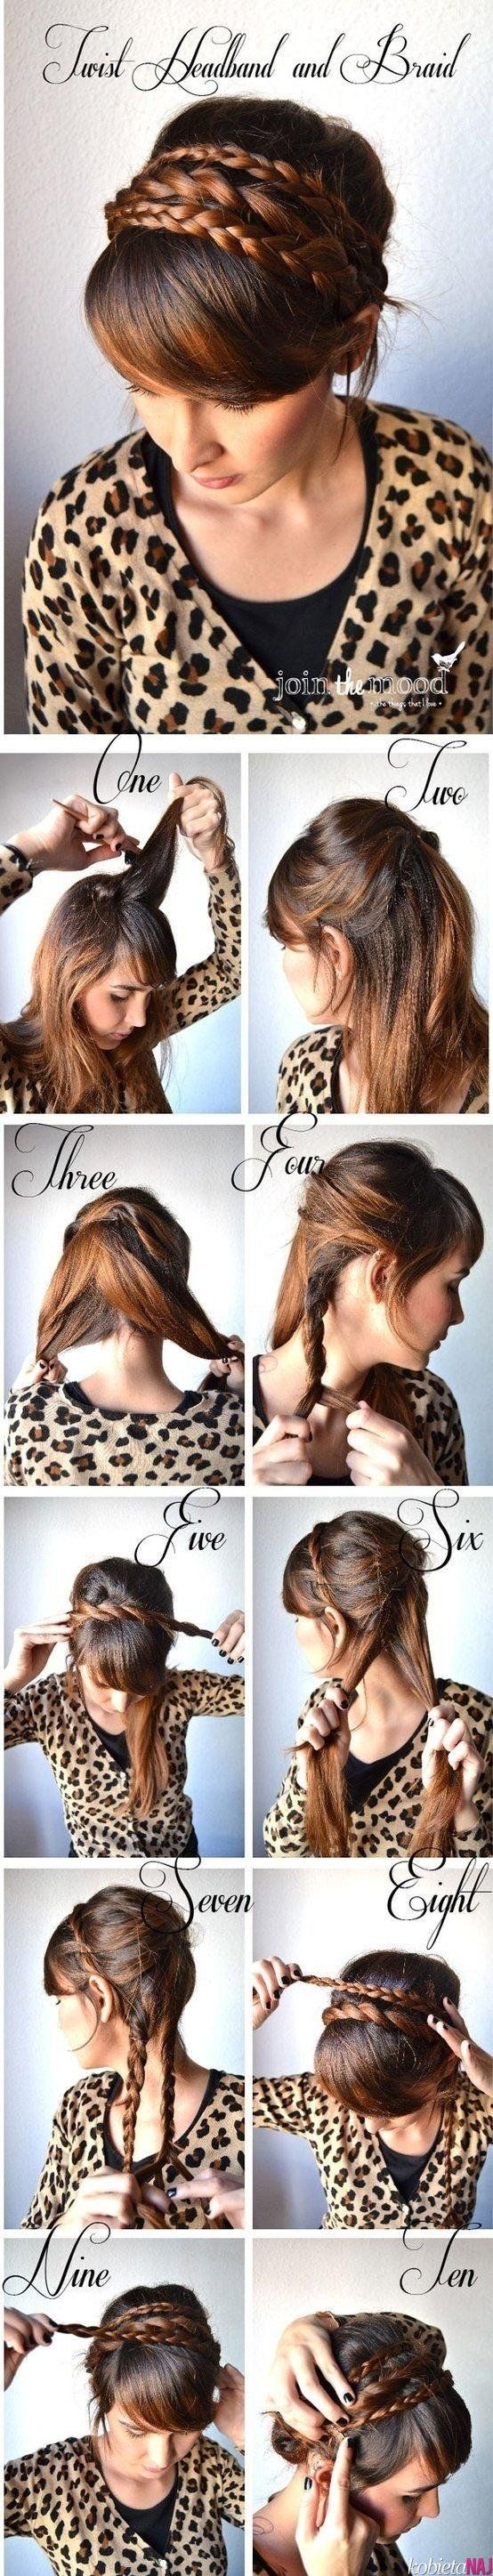 Twist headband and braid #DIY